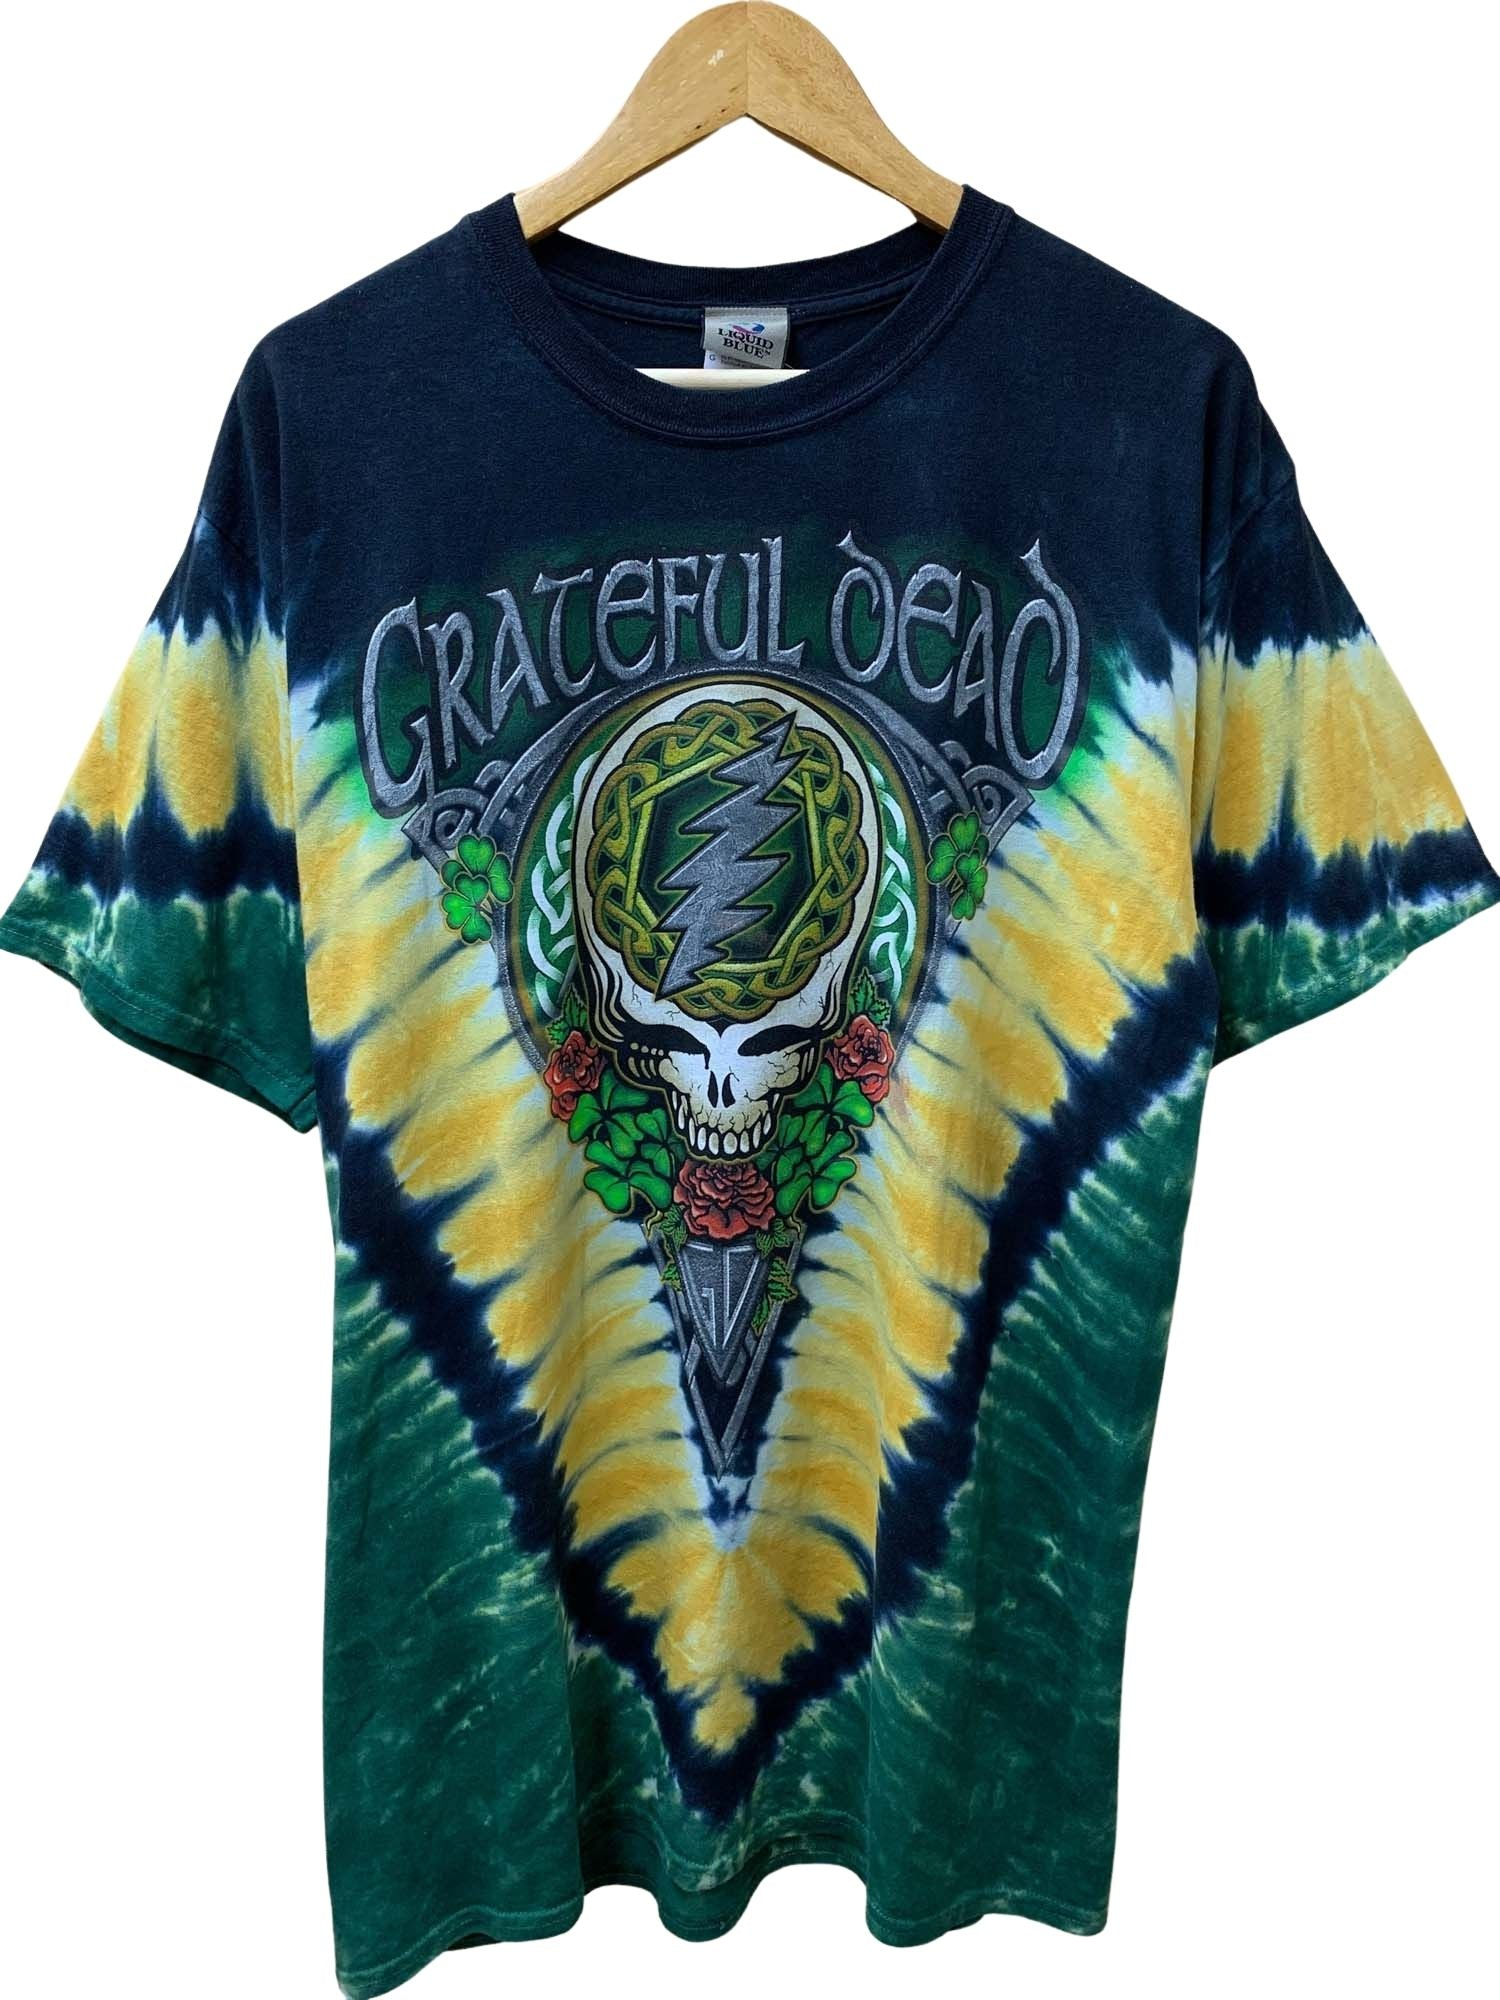 GRATEFUL DEAD TIE DYE BAND TEE